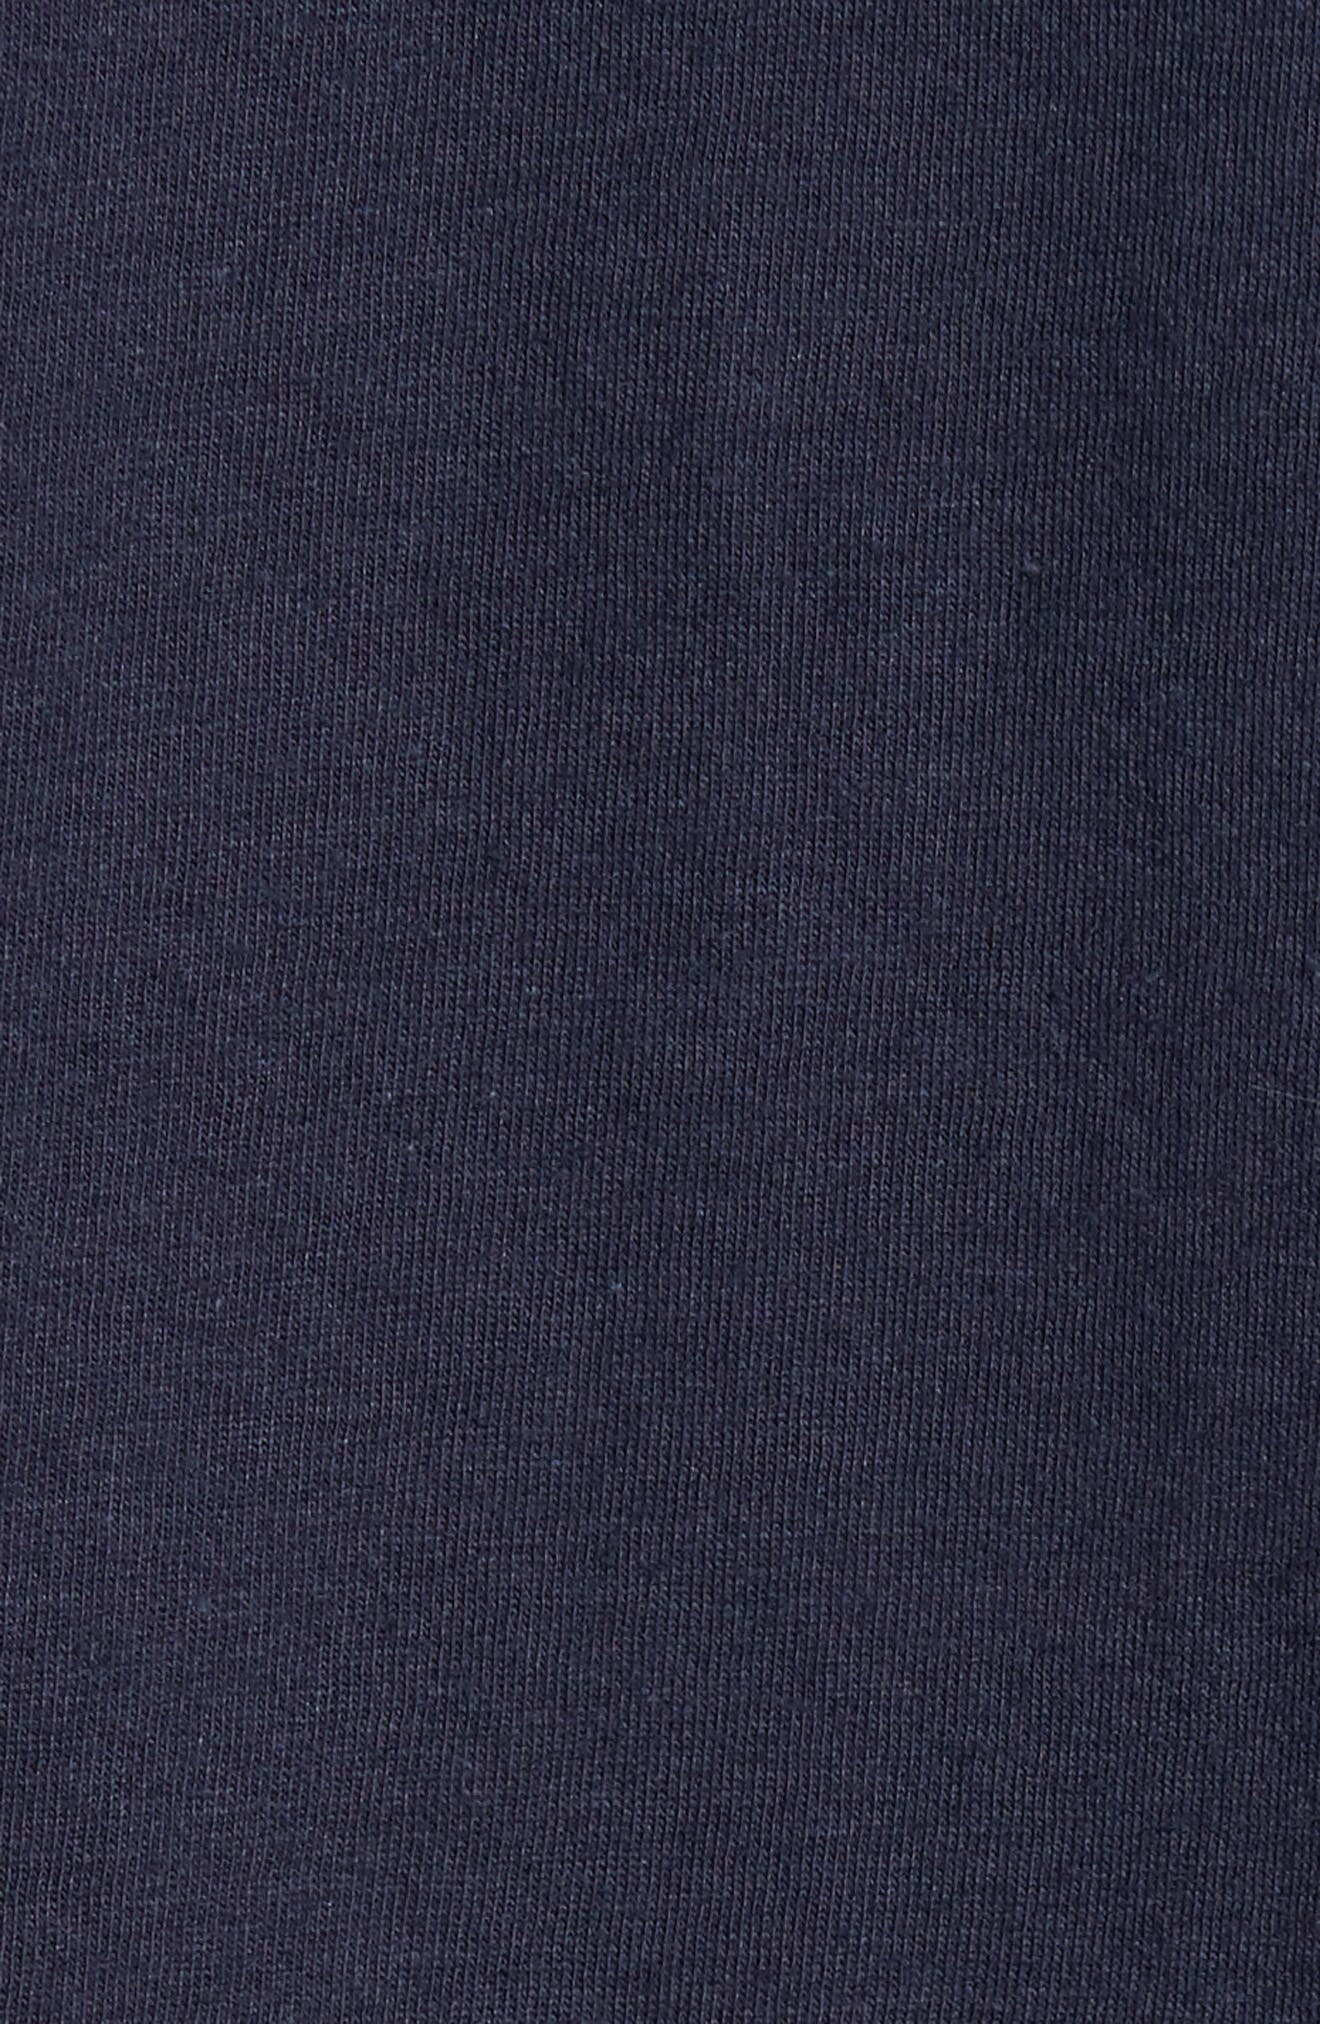 Sea Graphic T-Shirt,                             Alternate thumbnail 5, color,                             Navy